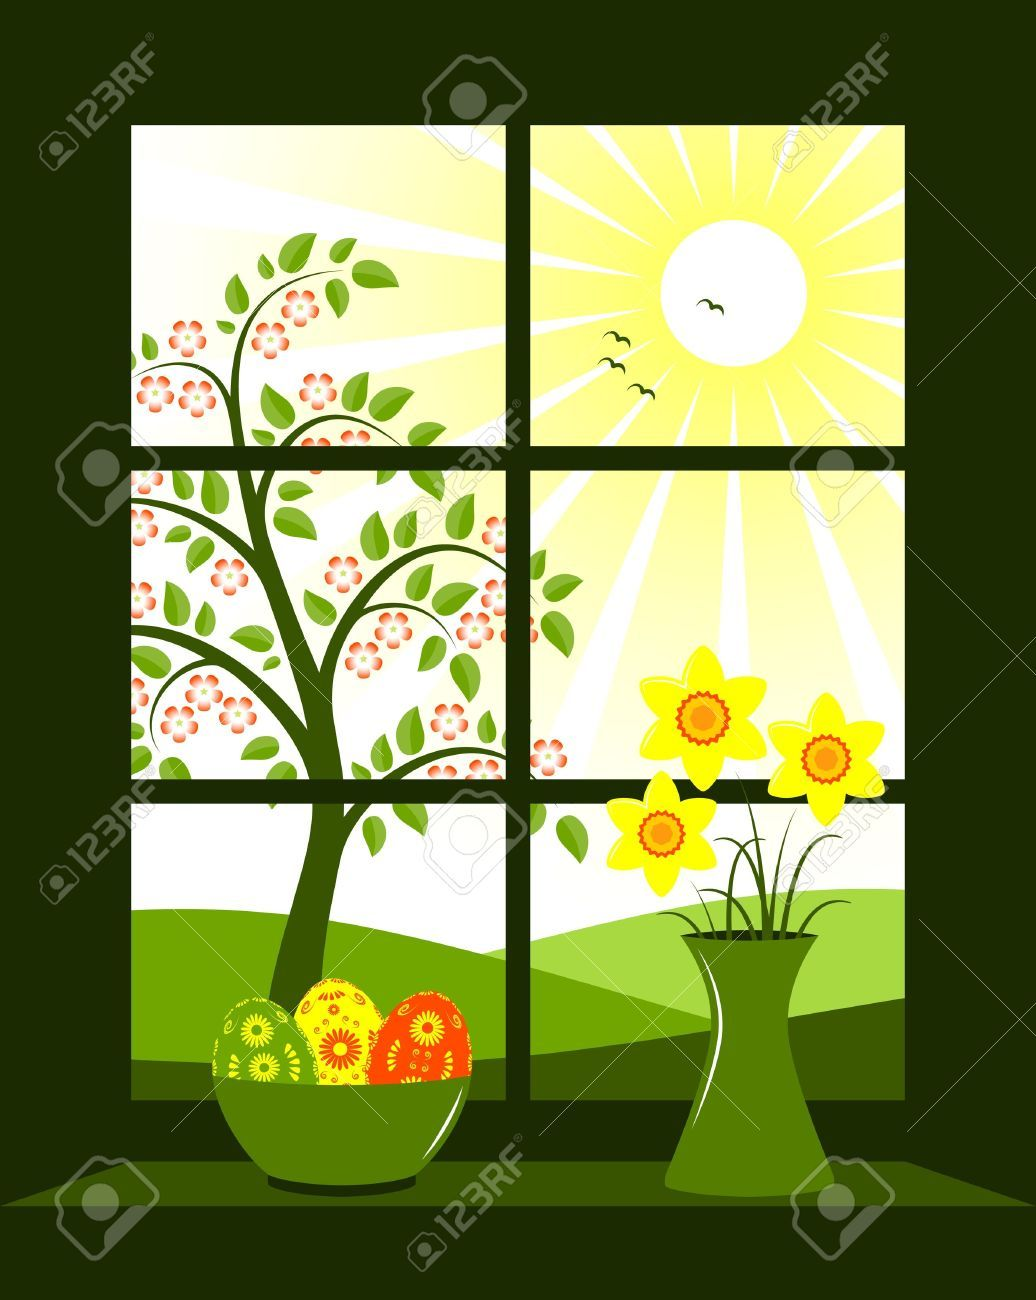 Easter Eggs In Bowl And Bunch Of Daffodils In Vase At Window Royalty Free Cliparts, Vectors, And Stock Illustration. Pic 8976472.